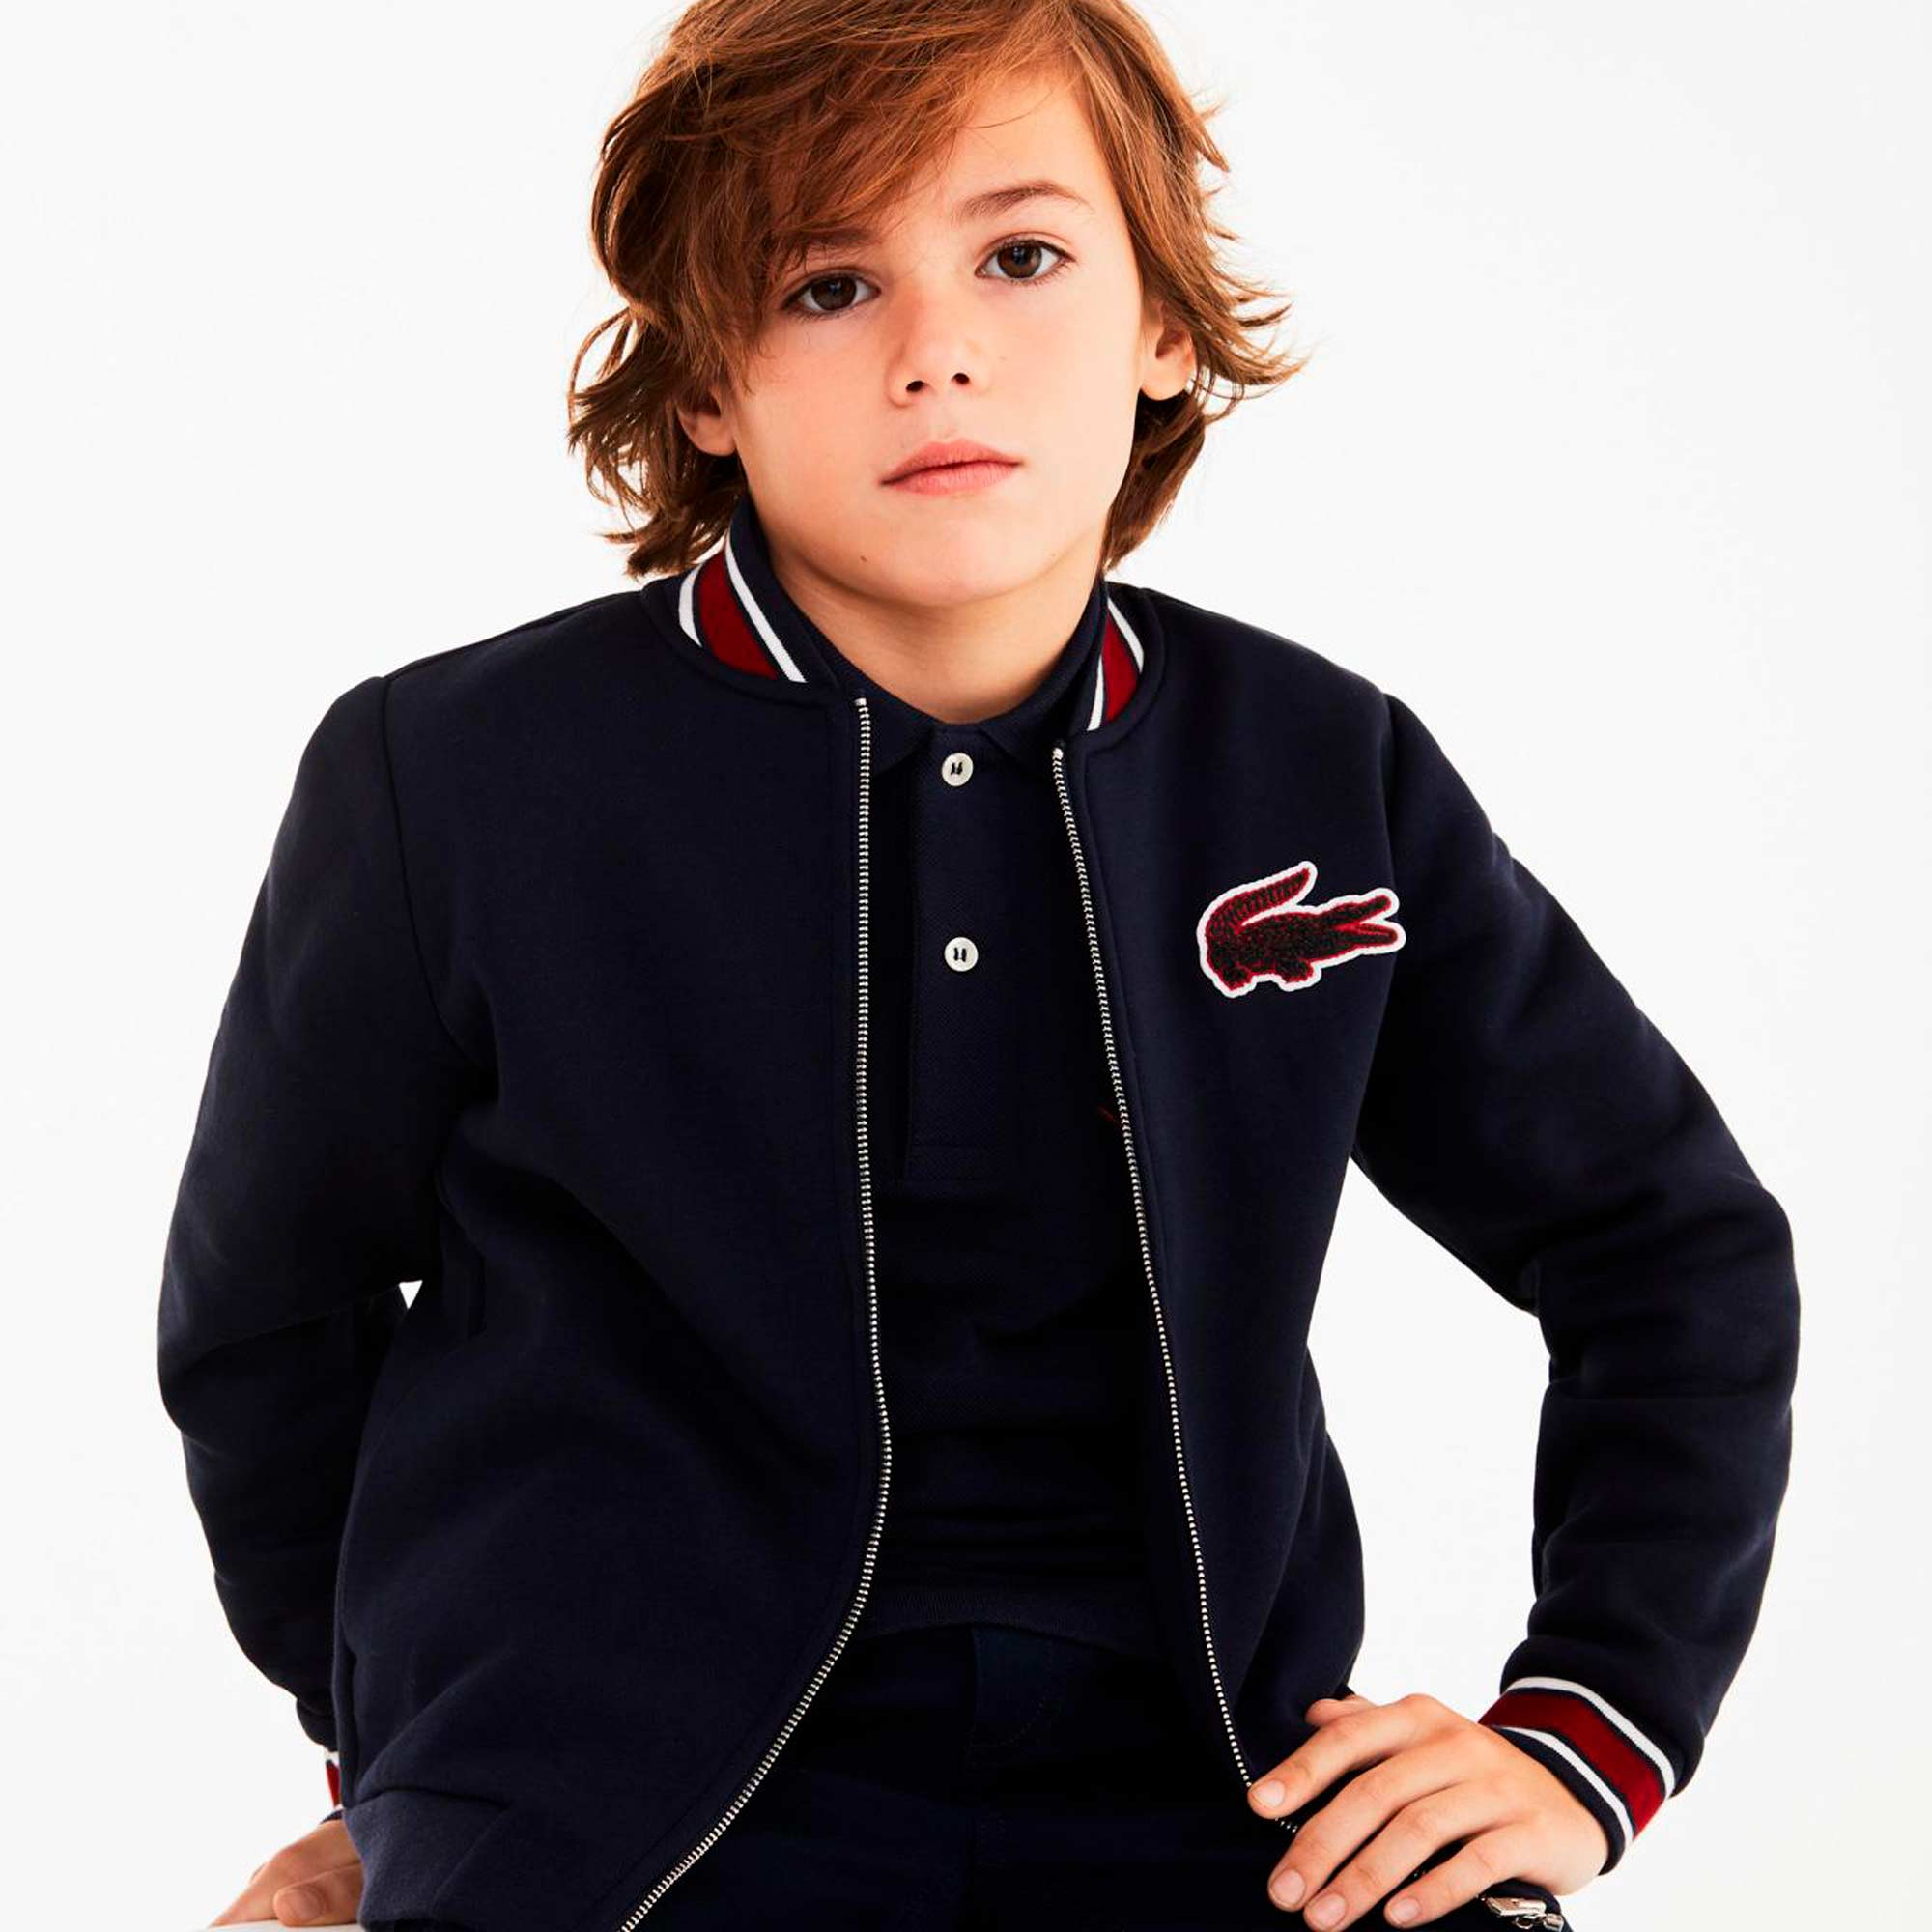 Boys' Croc Patch Varsity Jacket